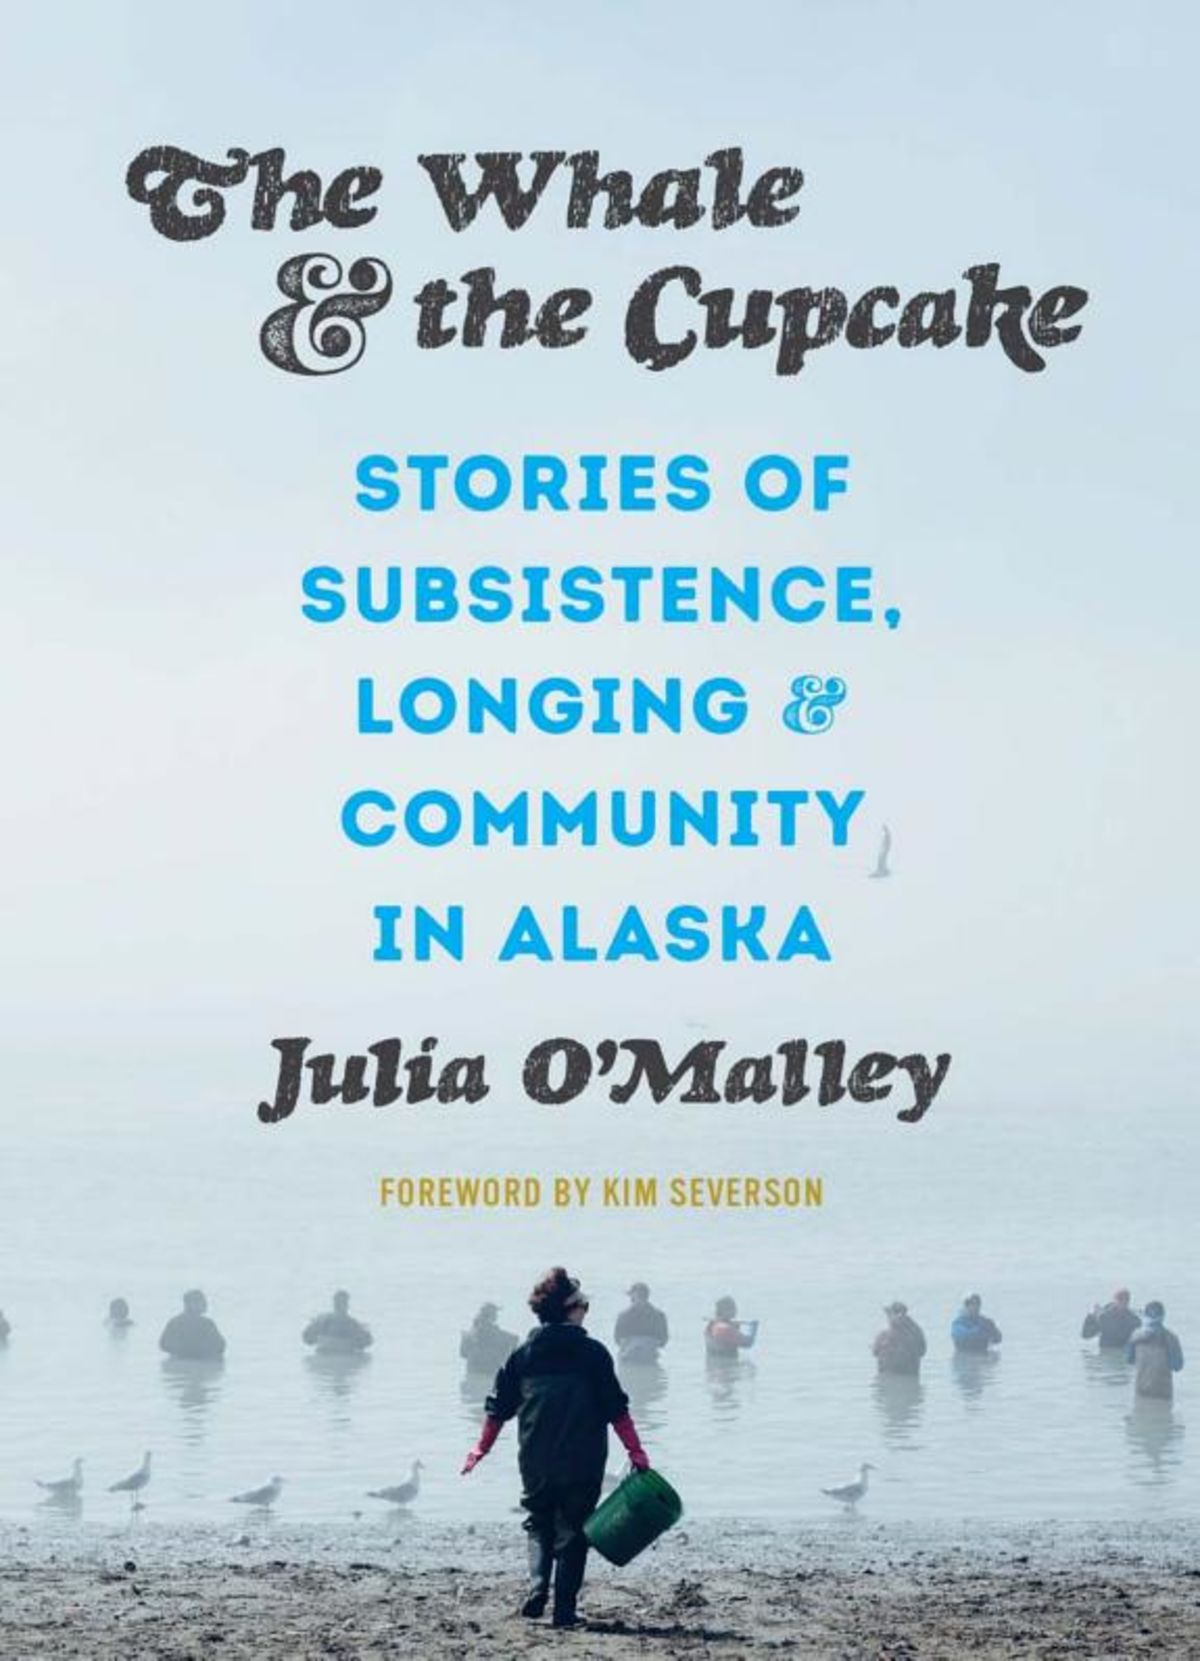 The Whale and the Cupcake: Stories of Subsistence, Longing, and Community in Alaska